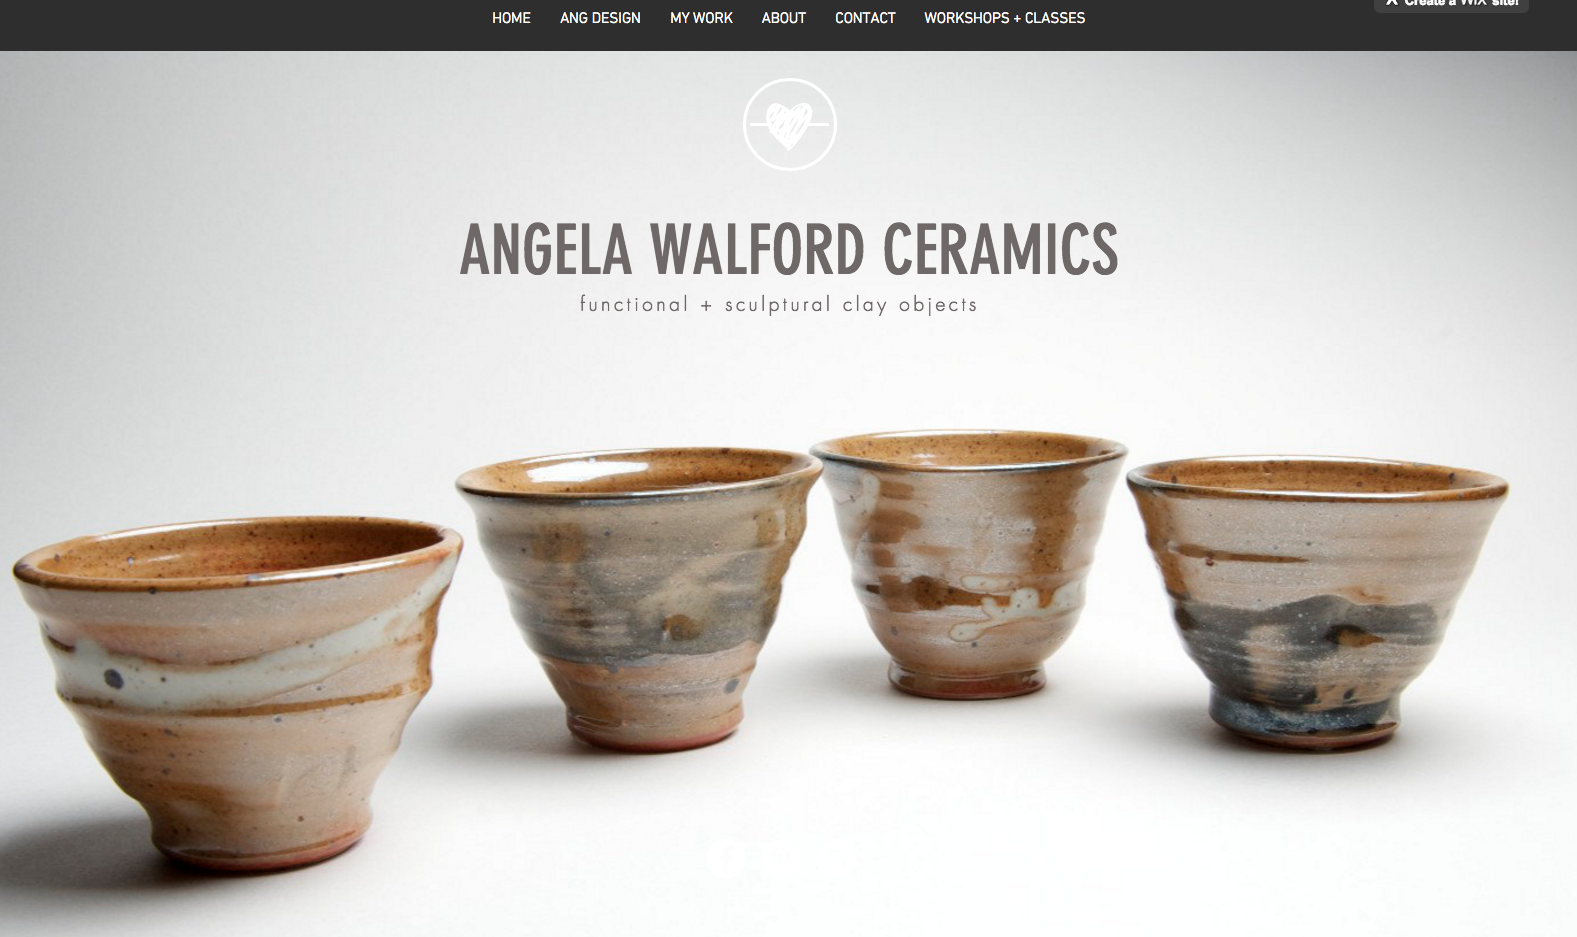 angela walford ceramics website